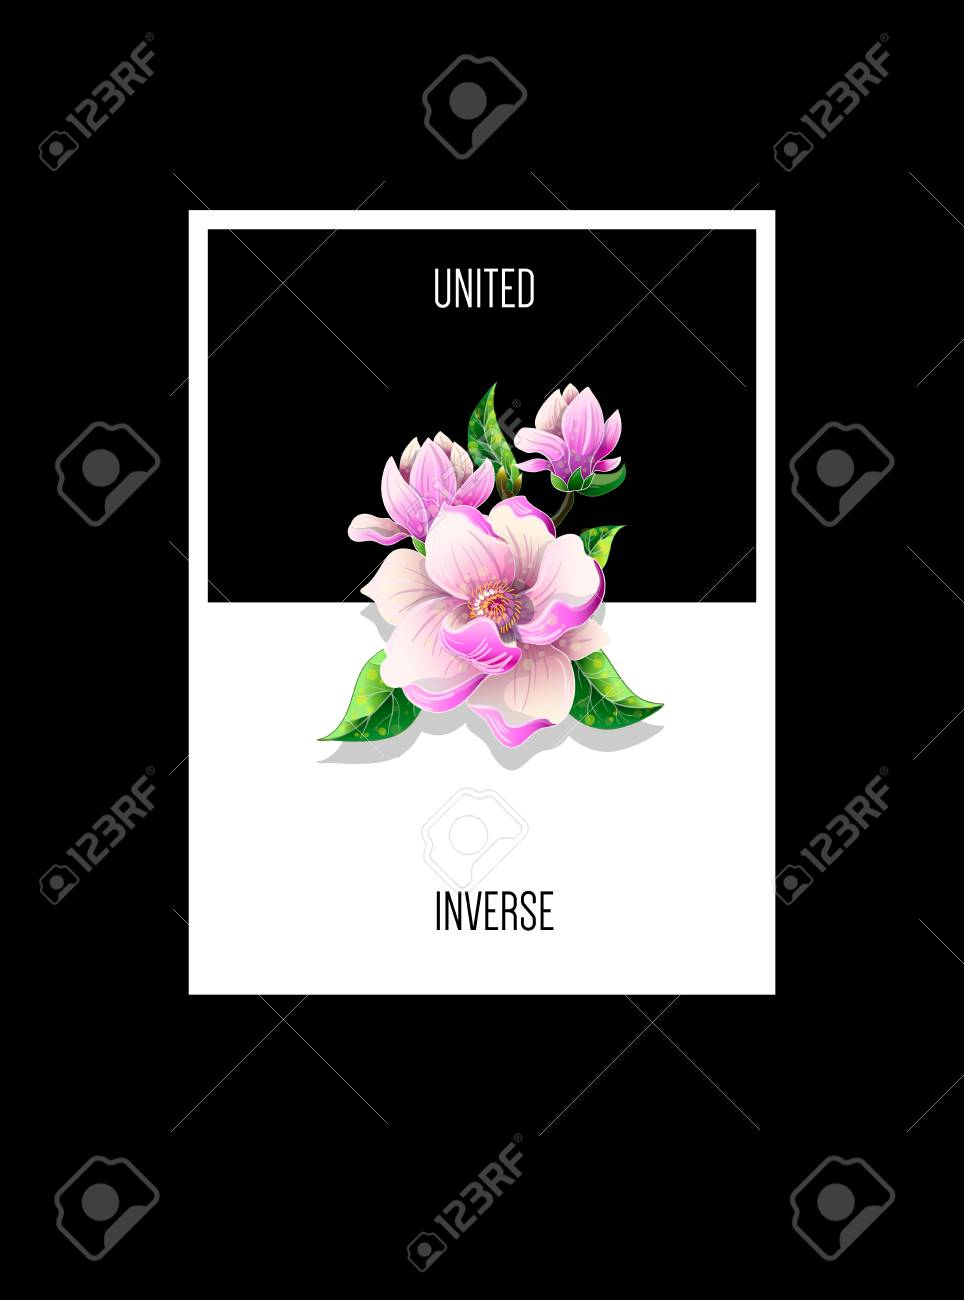 Design T Shirt With Magnolia Flowers And Slogan Royalty Free